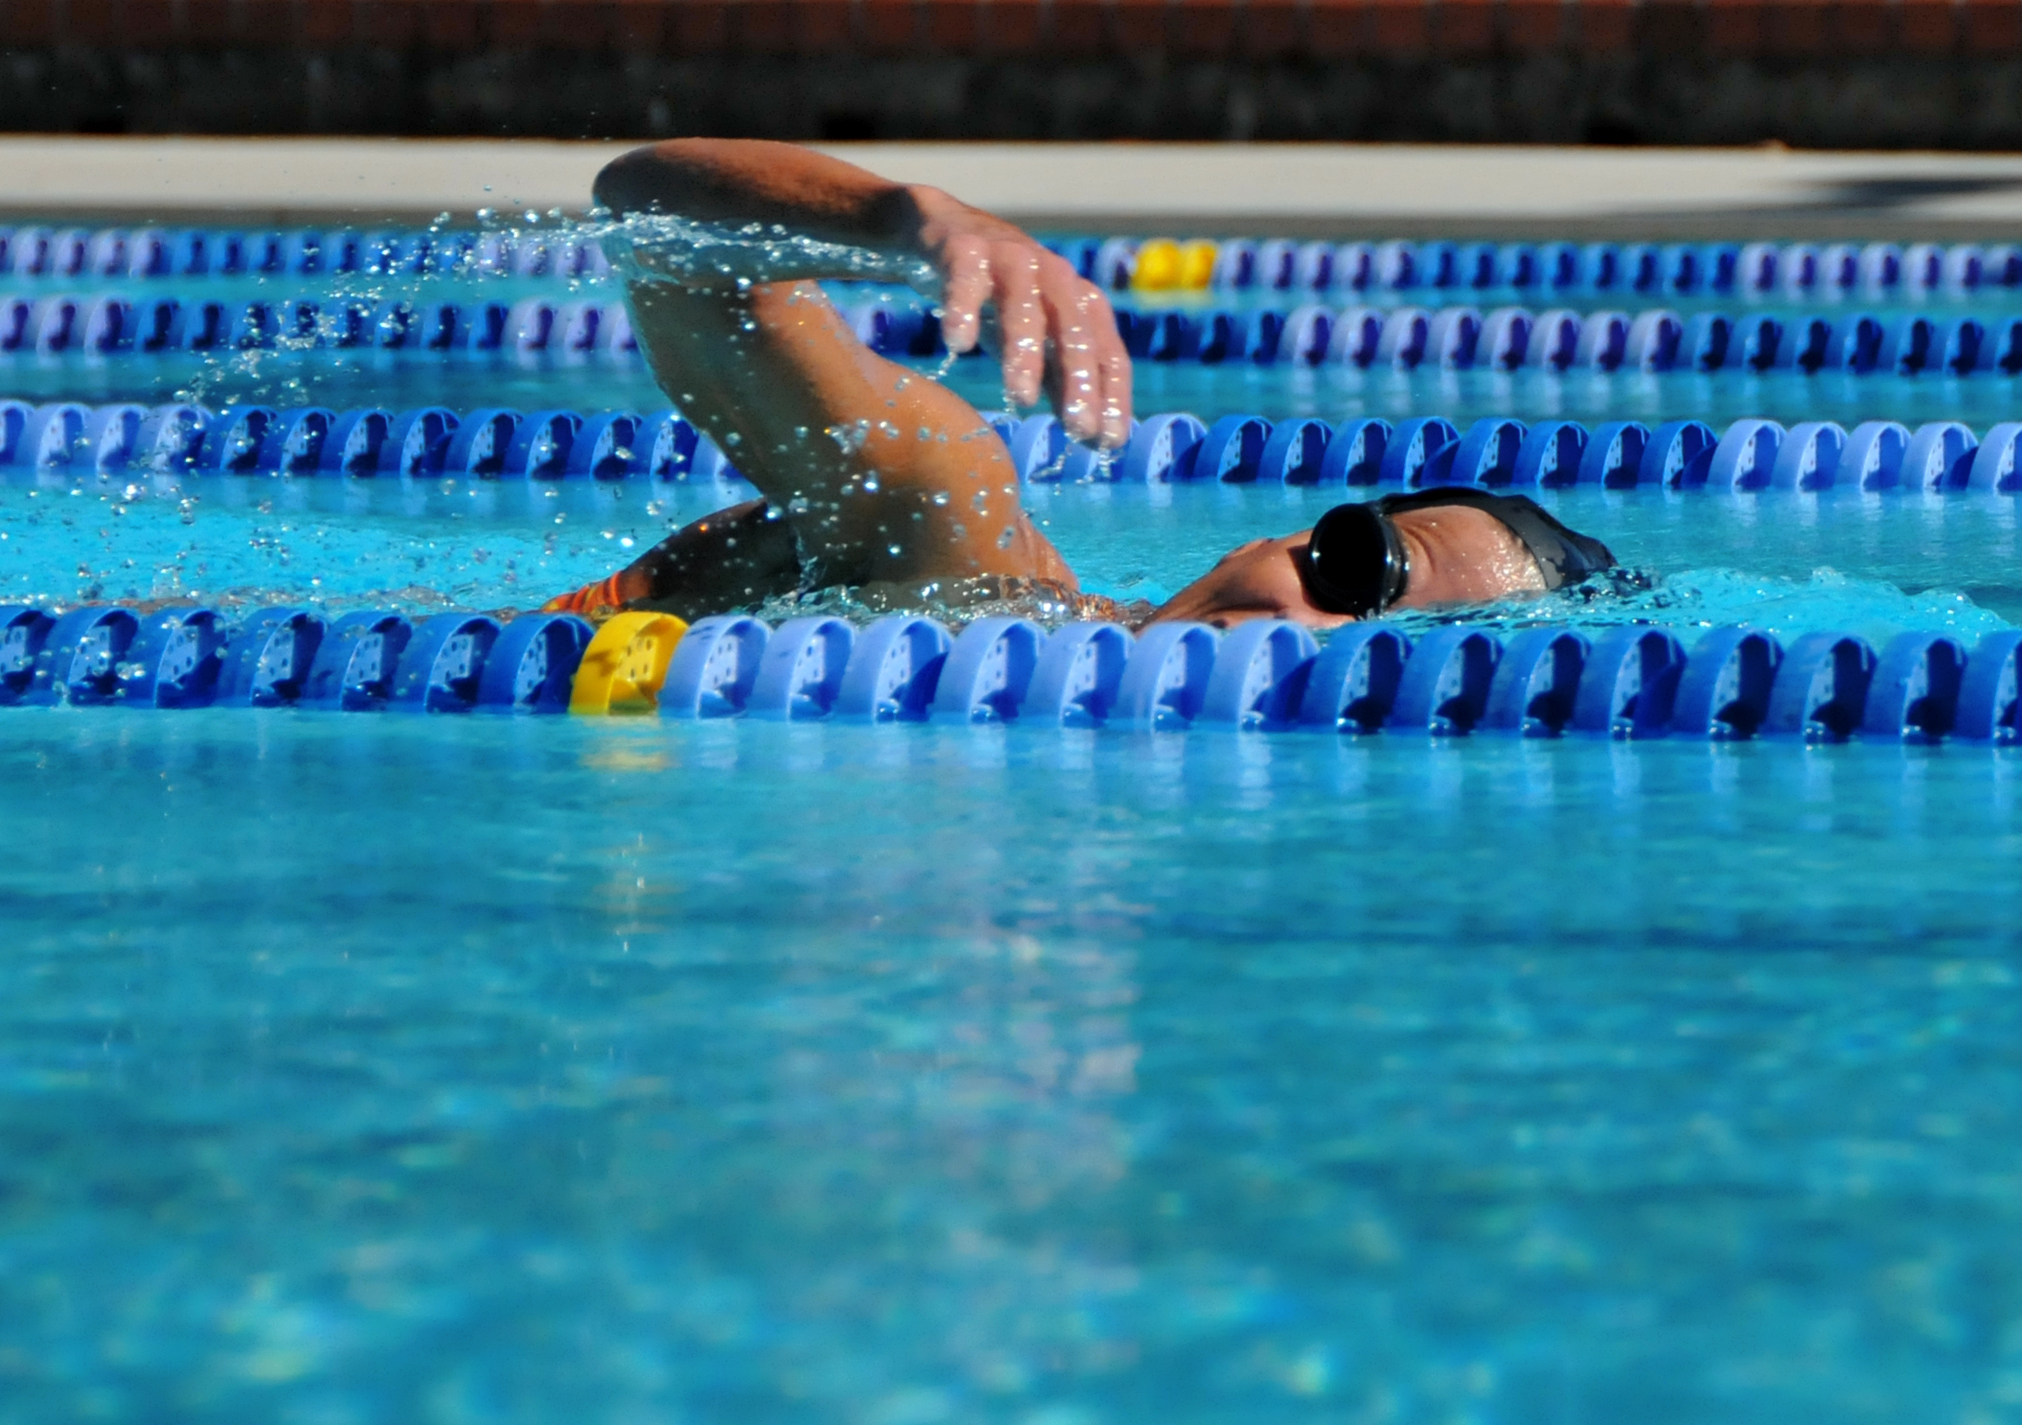 Swimmer in pool at Shute Park Aquatic and Recreation Center